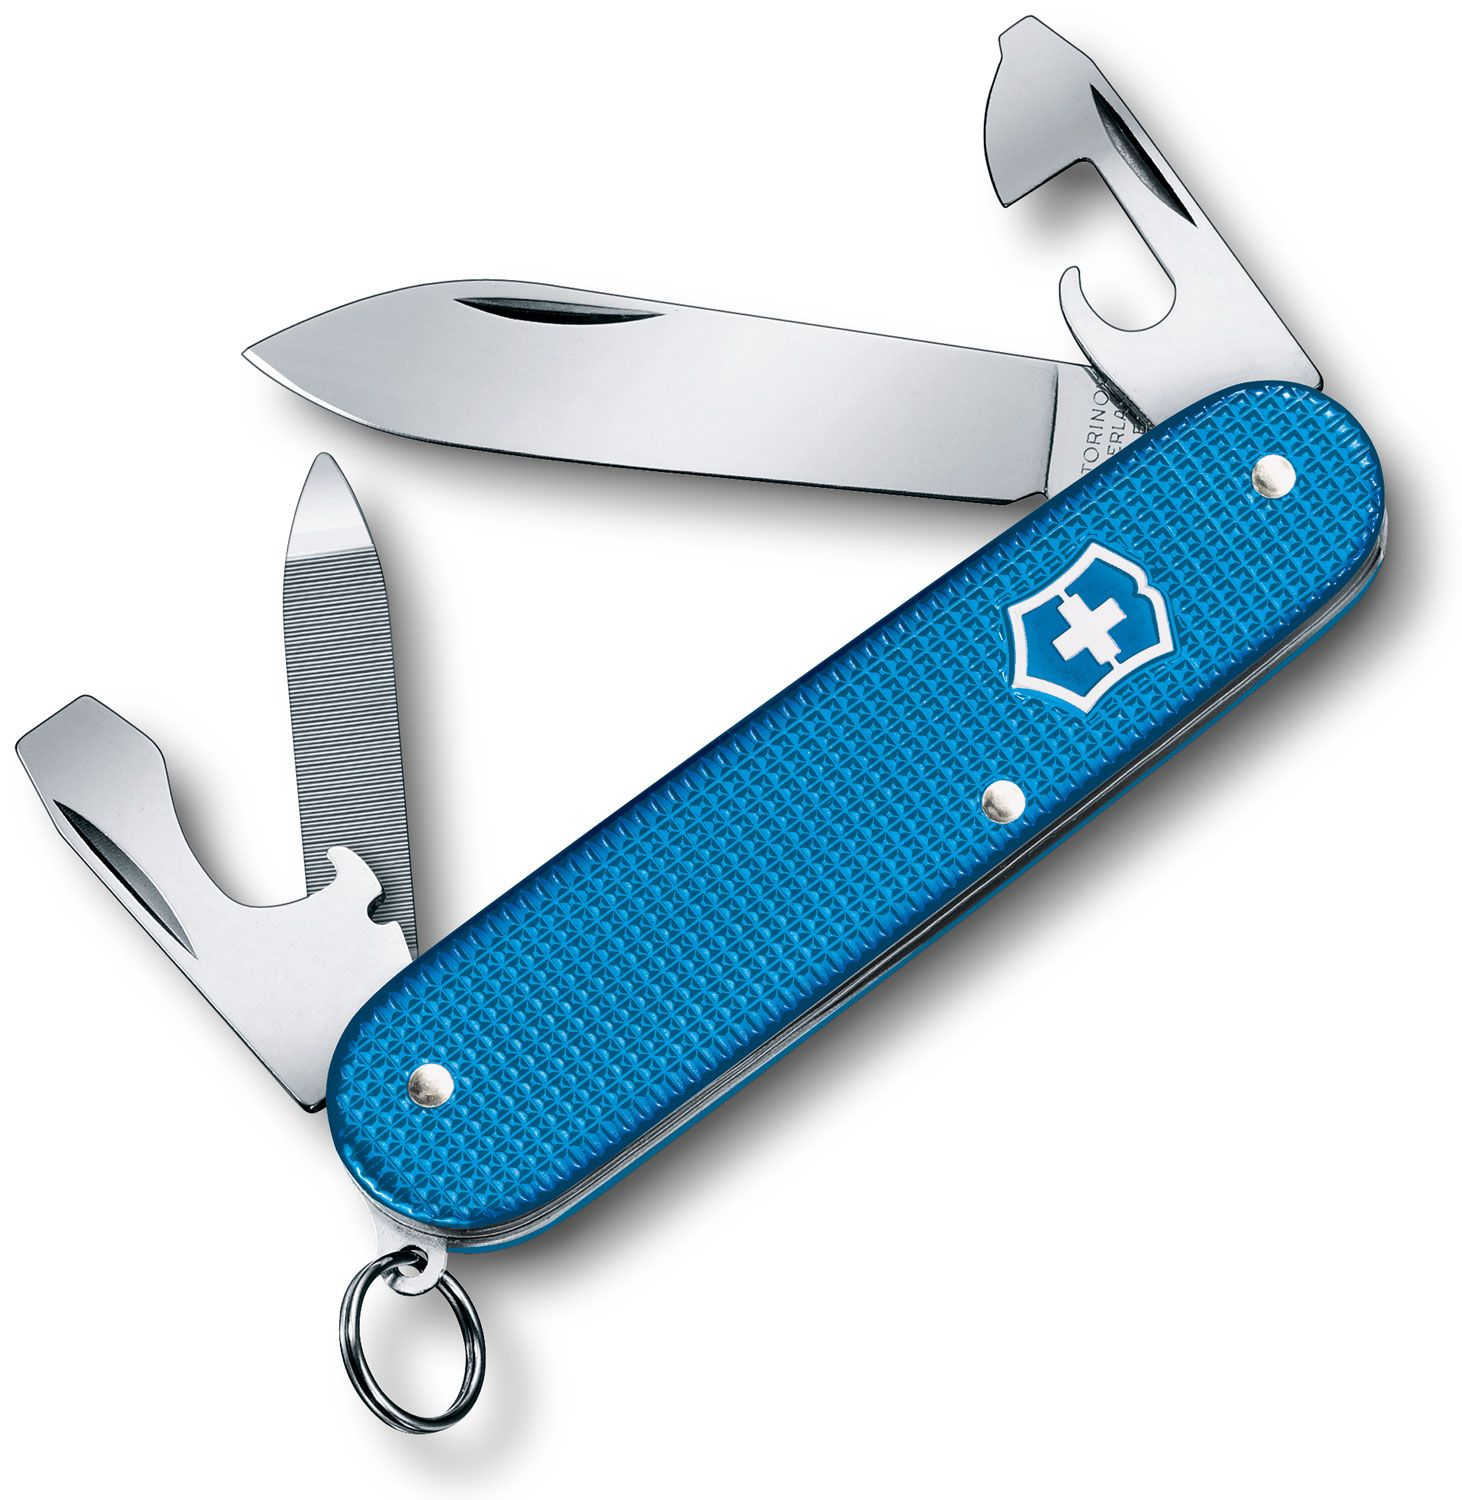 Victorinox Cadet partially unfolded, blue, on white background